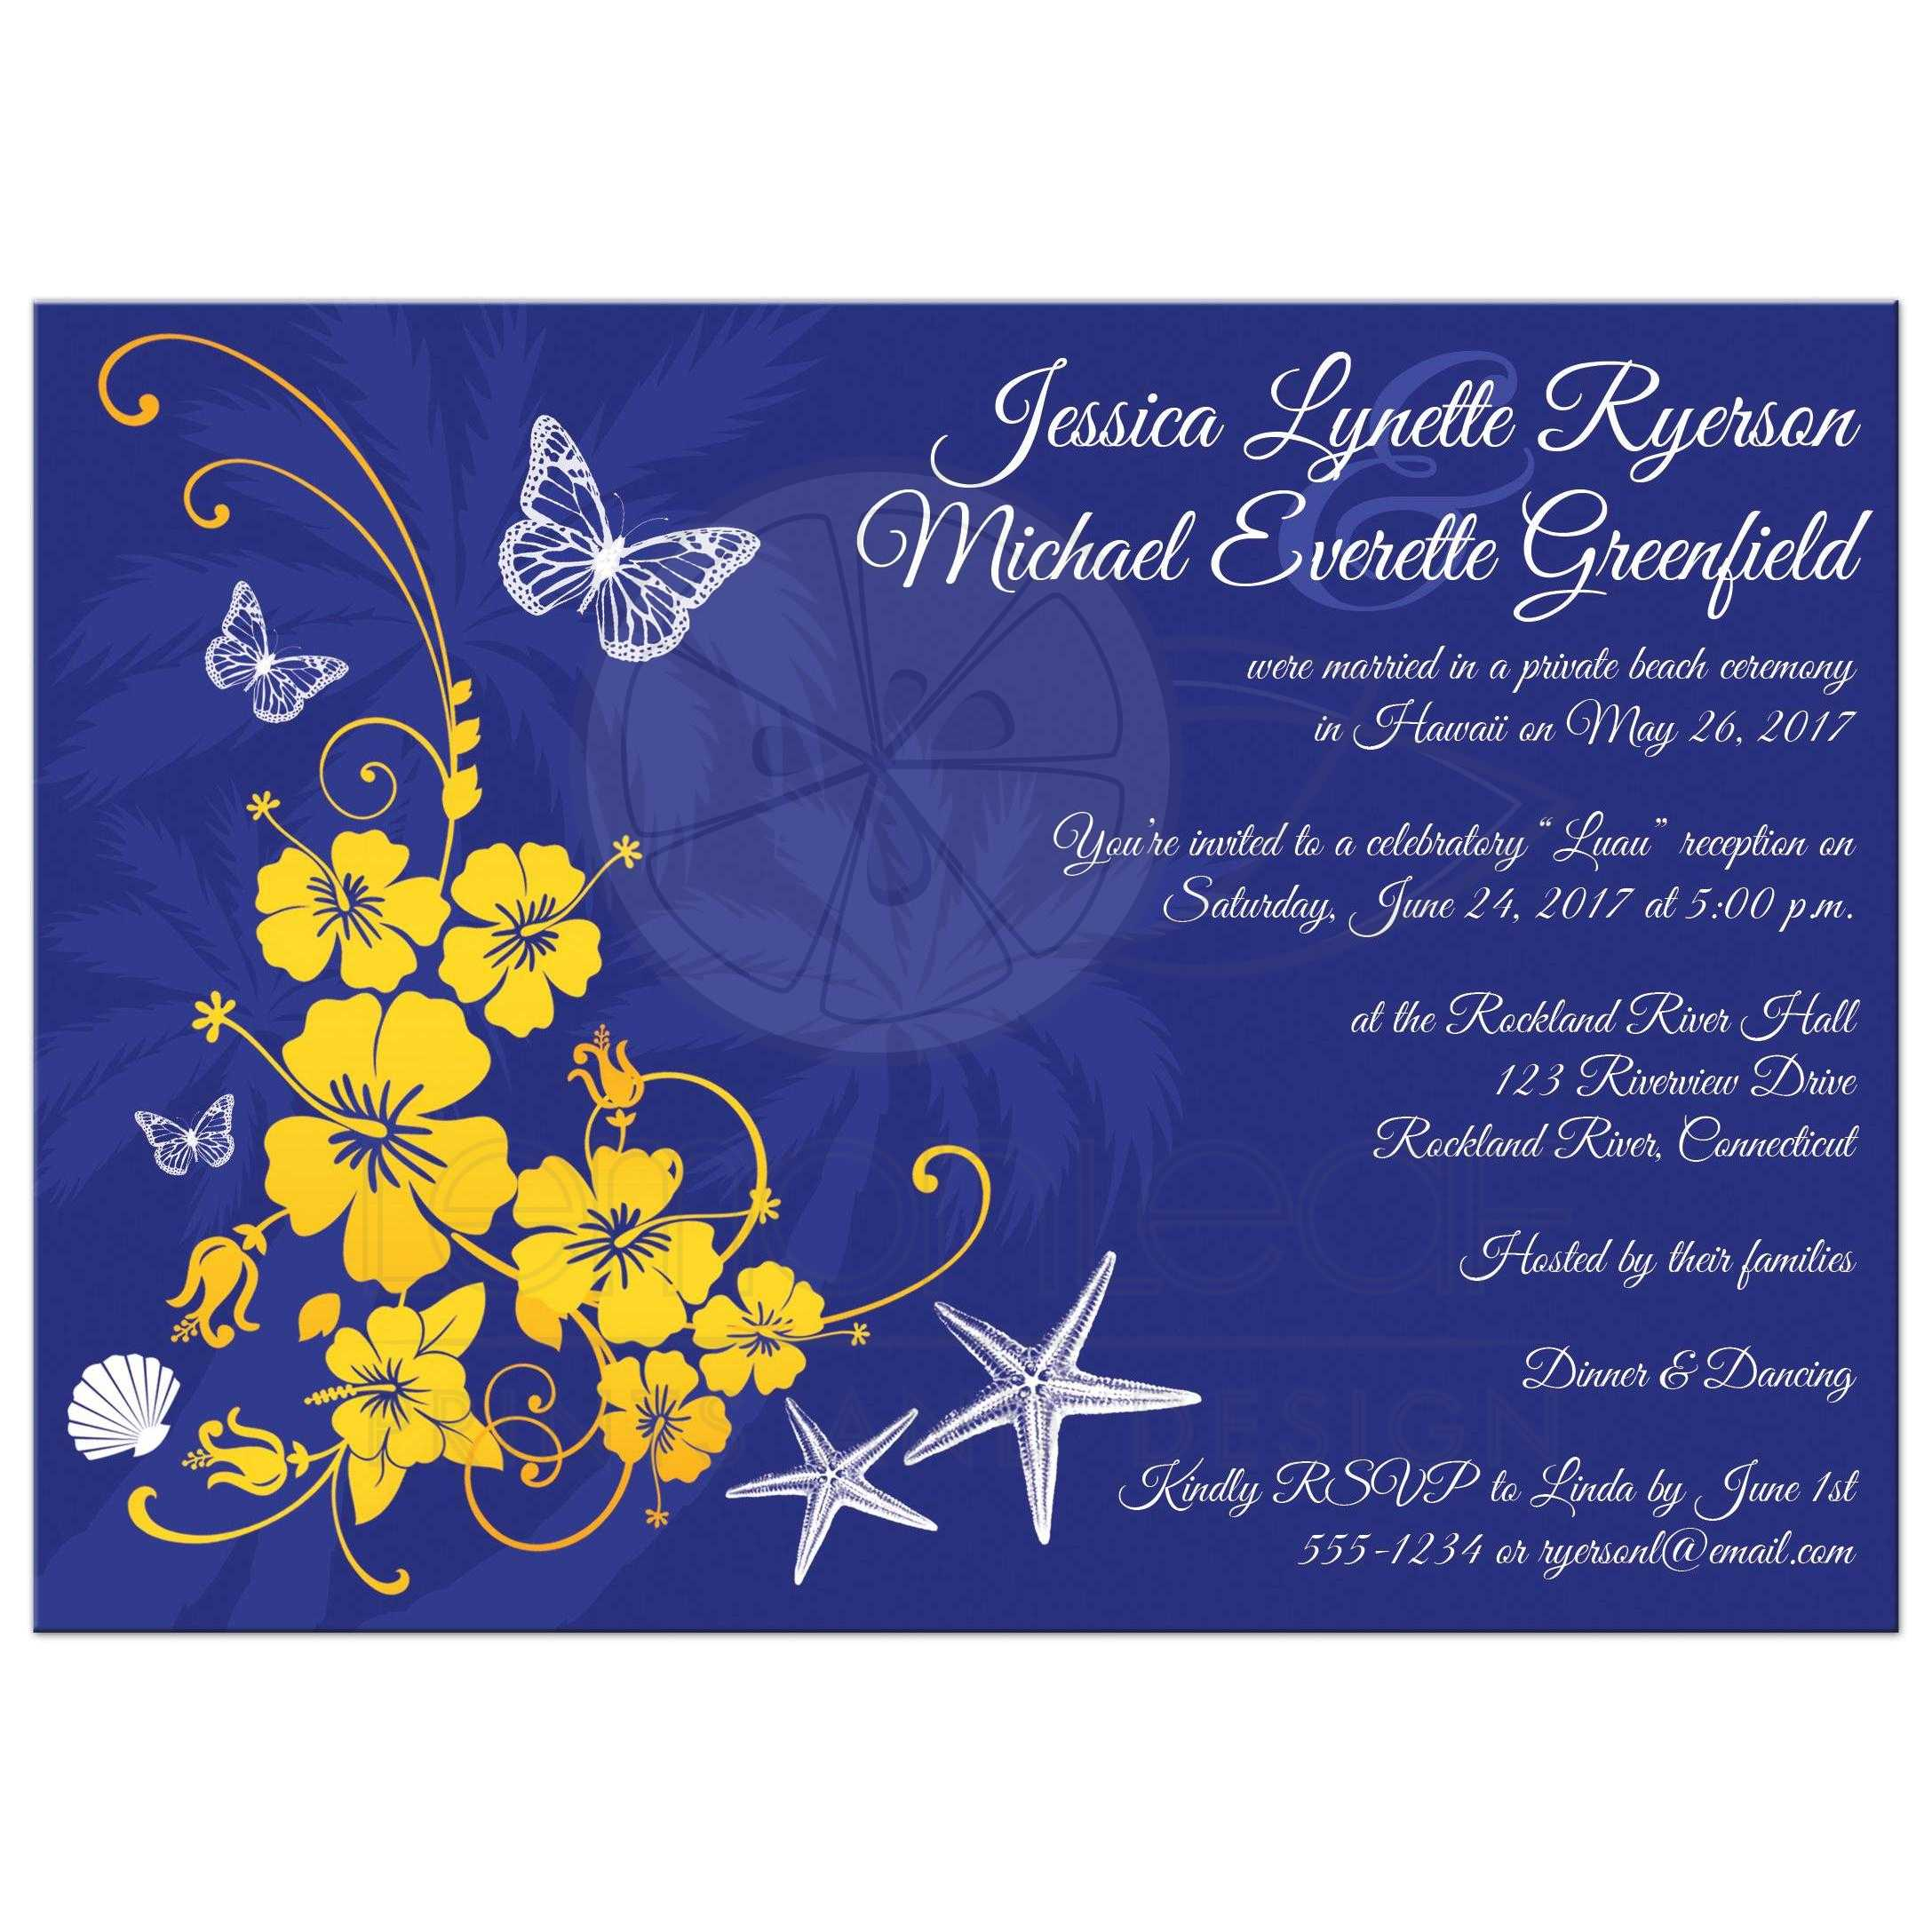 Post Wedding Reception Invitation | Blue, Yellow, White Tropical ...